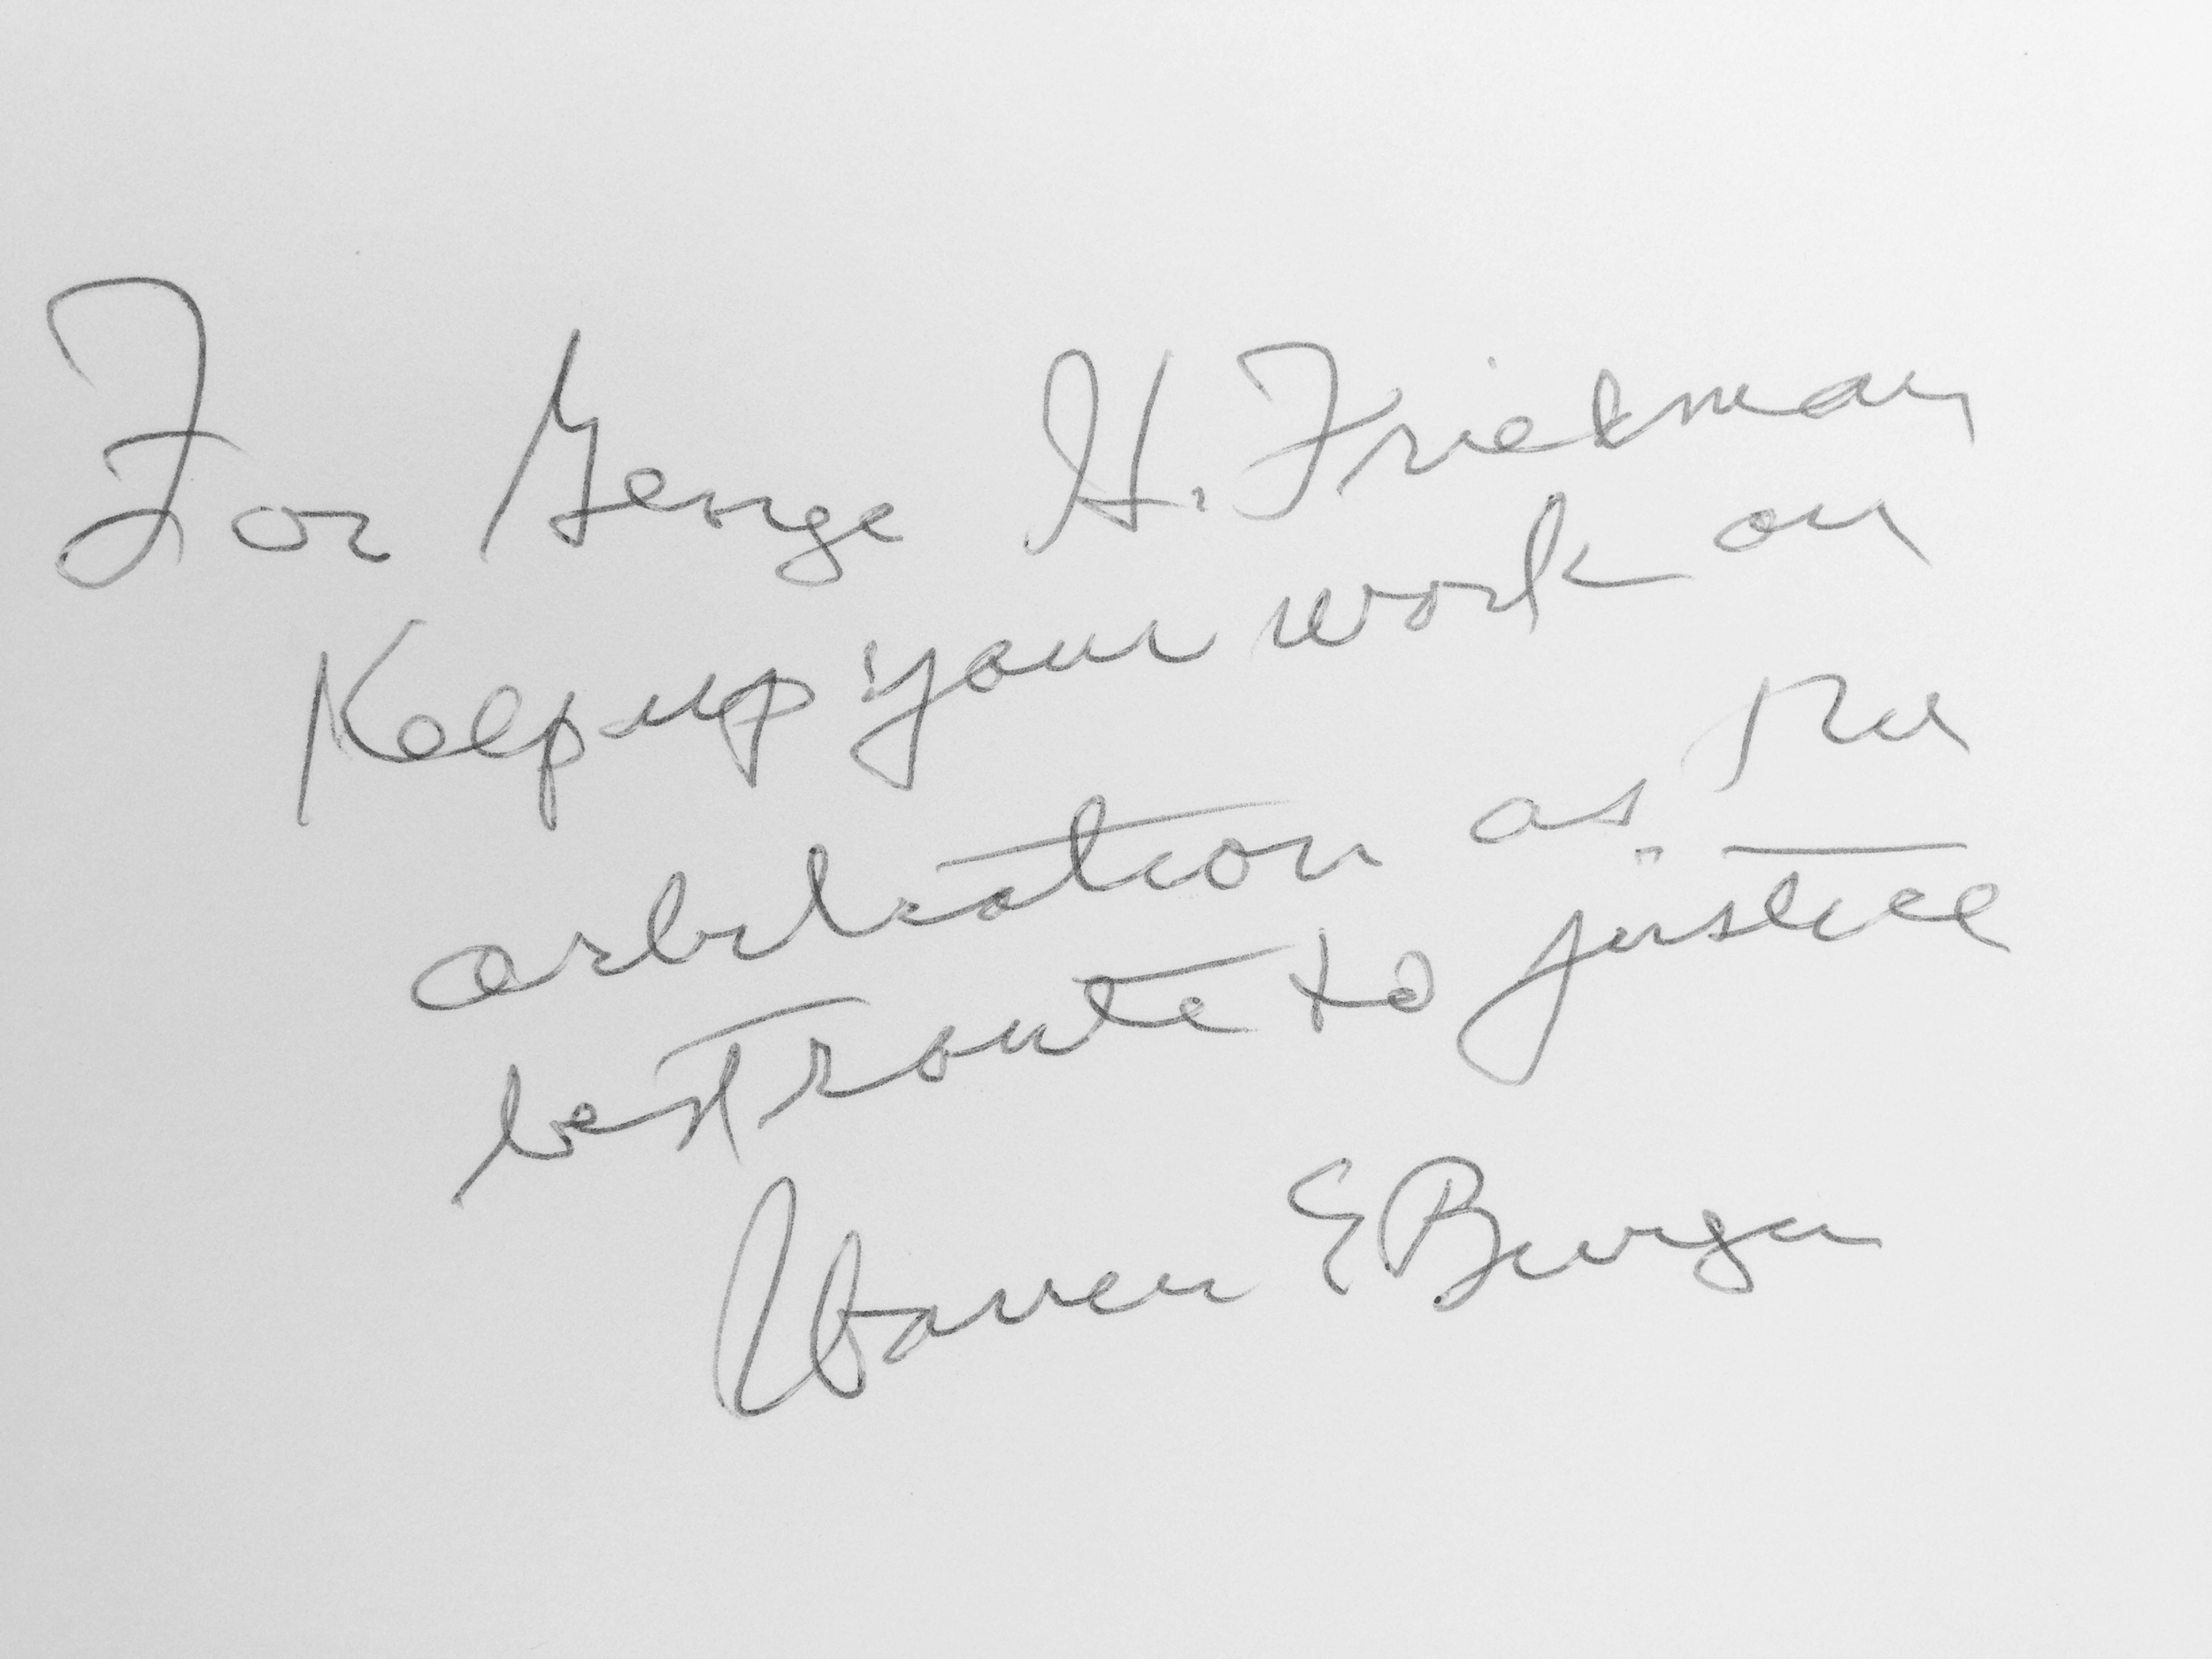 """""""For George H. Friedman:Keep up your work on arbitration as the best route to justice ."""" -Hon. Warren E. Burger, former Chief Justice of the Supreme Court"""